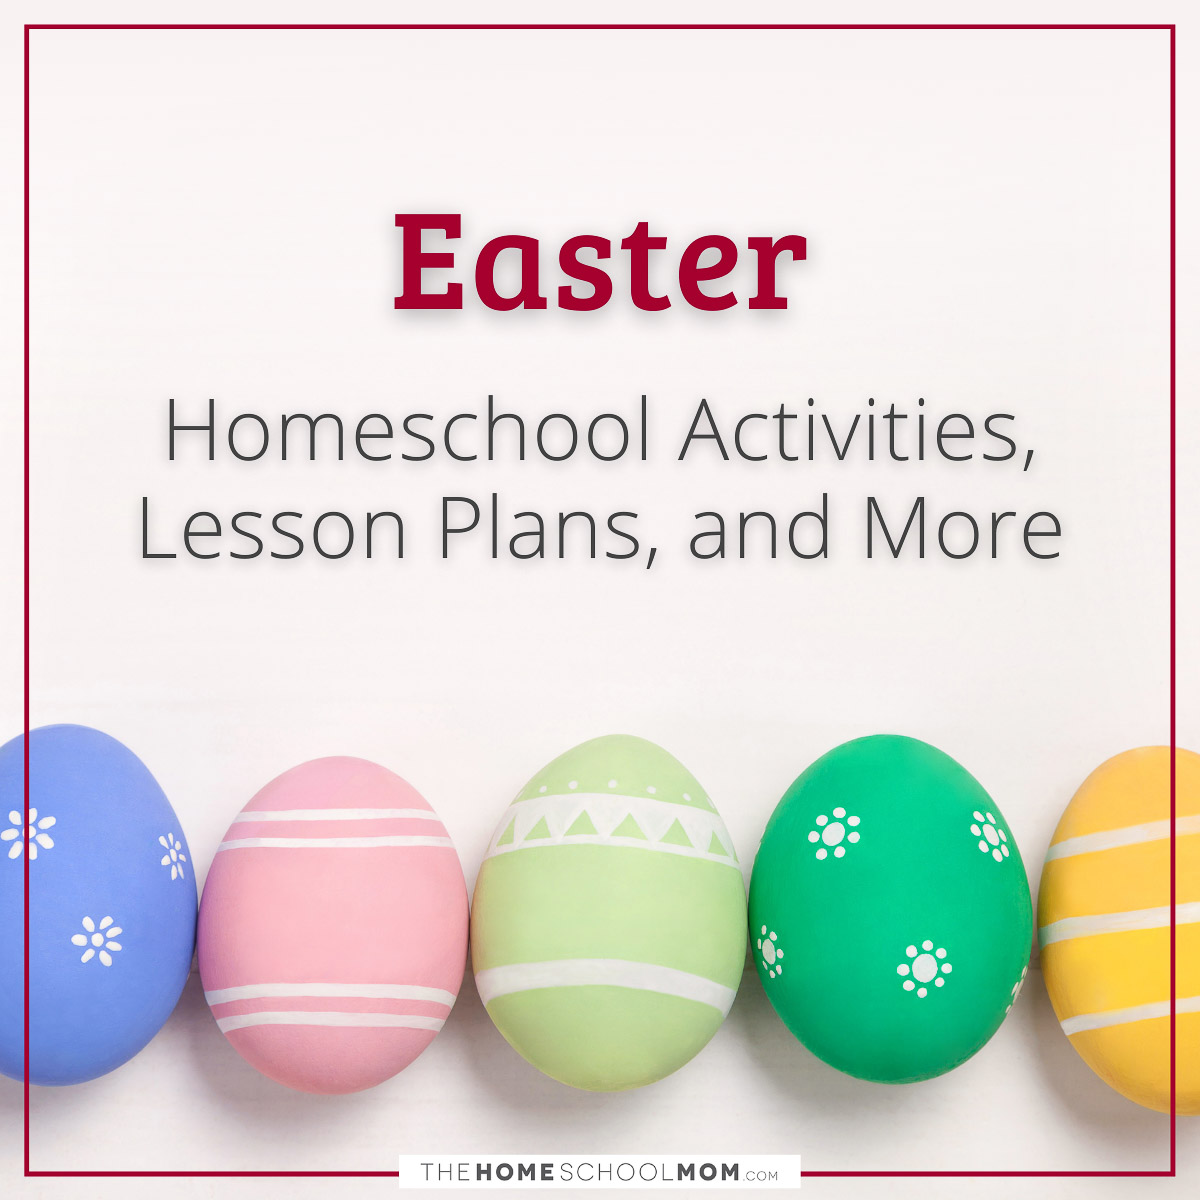 Easter: Homeschool Activities, Lesson Plans, and More